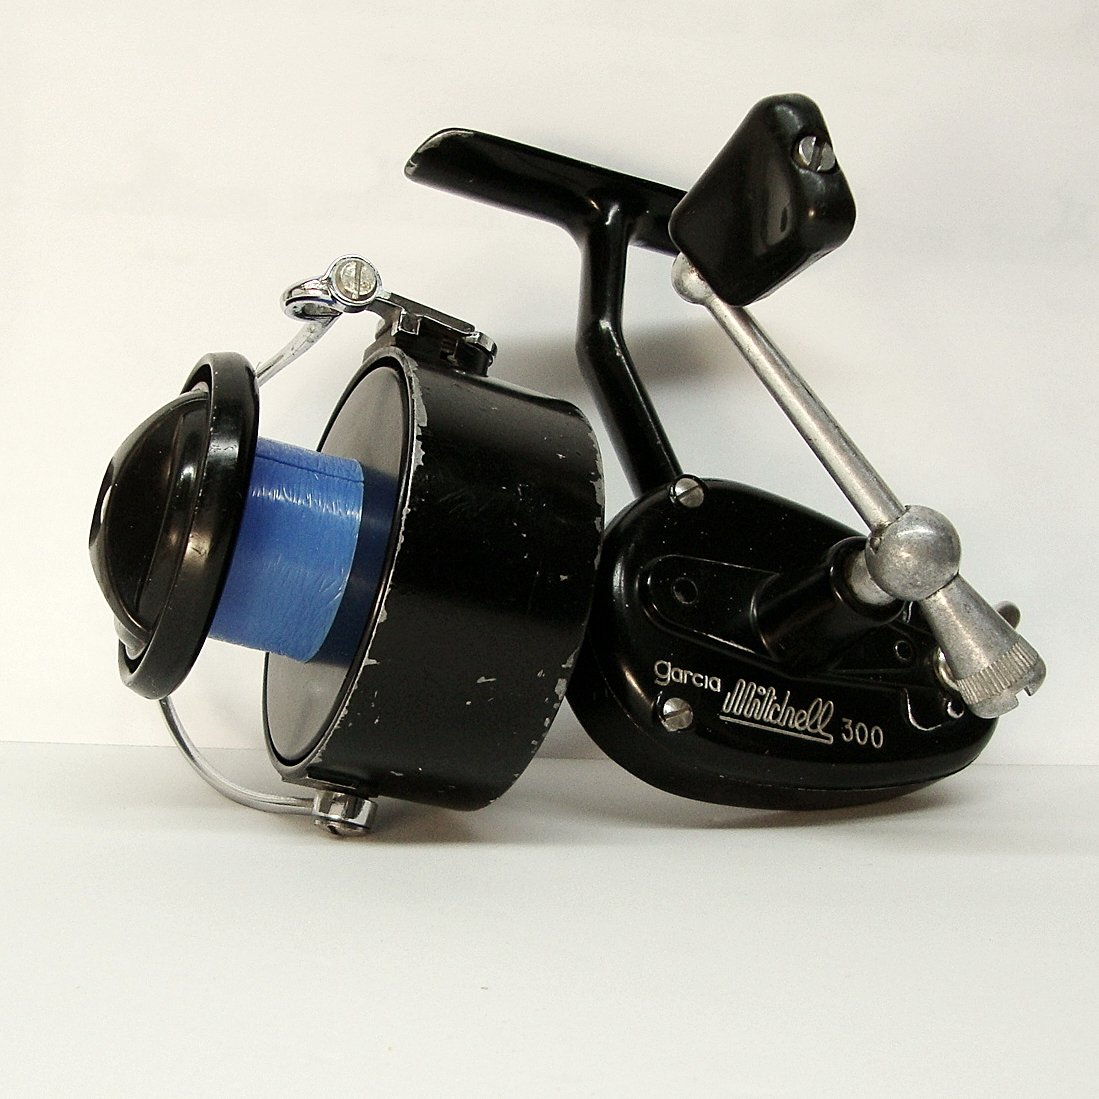 Vintage garcia mitchell fishing reel 300 made in france for Mitchell 300 fishing reel